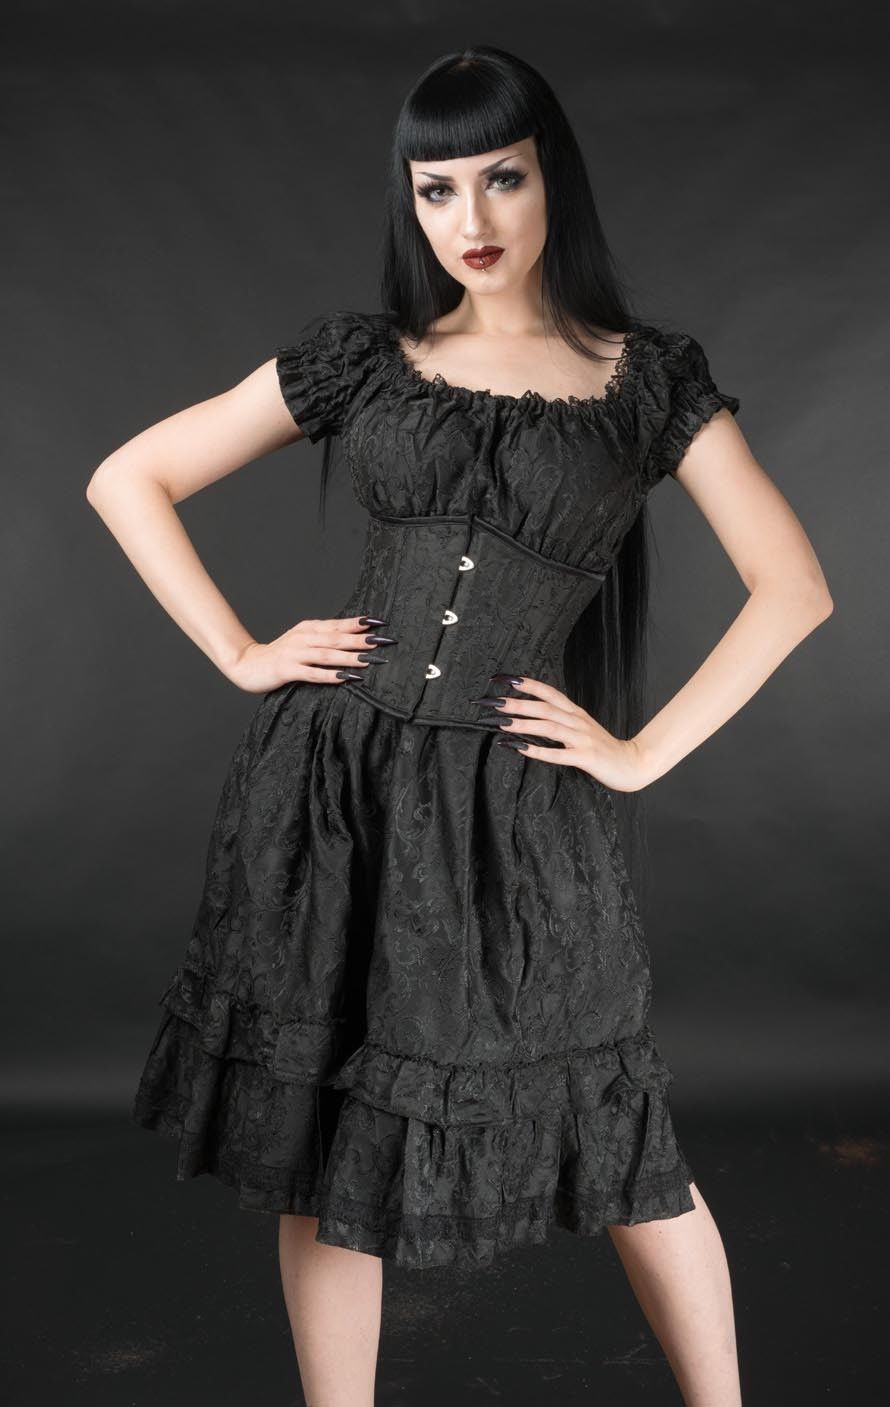 Black Brocade Gothic Rockabilly Pirate Ruffle Corset Dress Gothabilly Mid Length